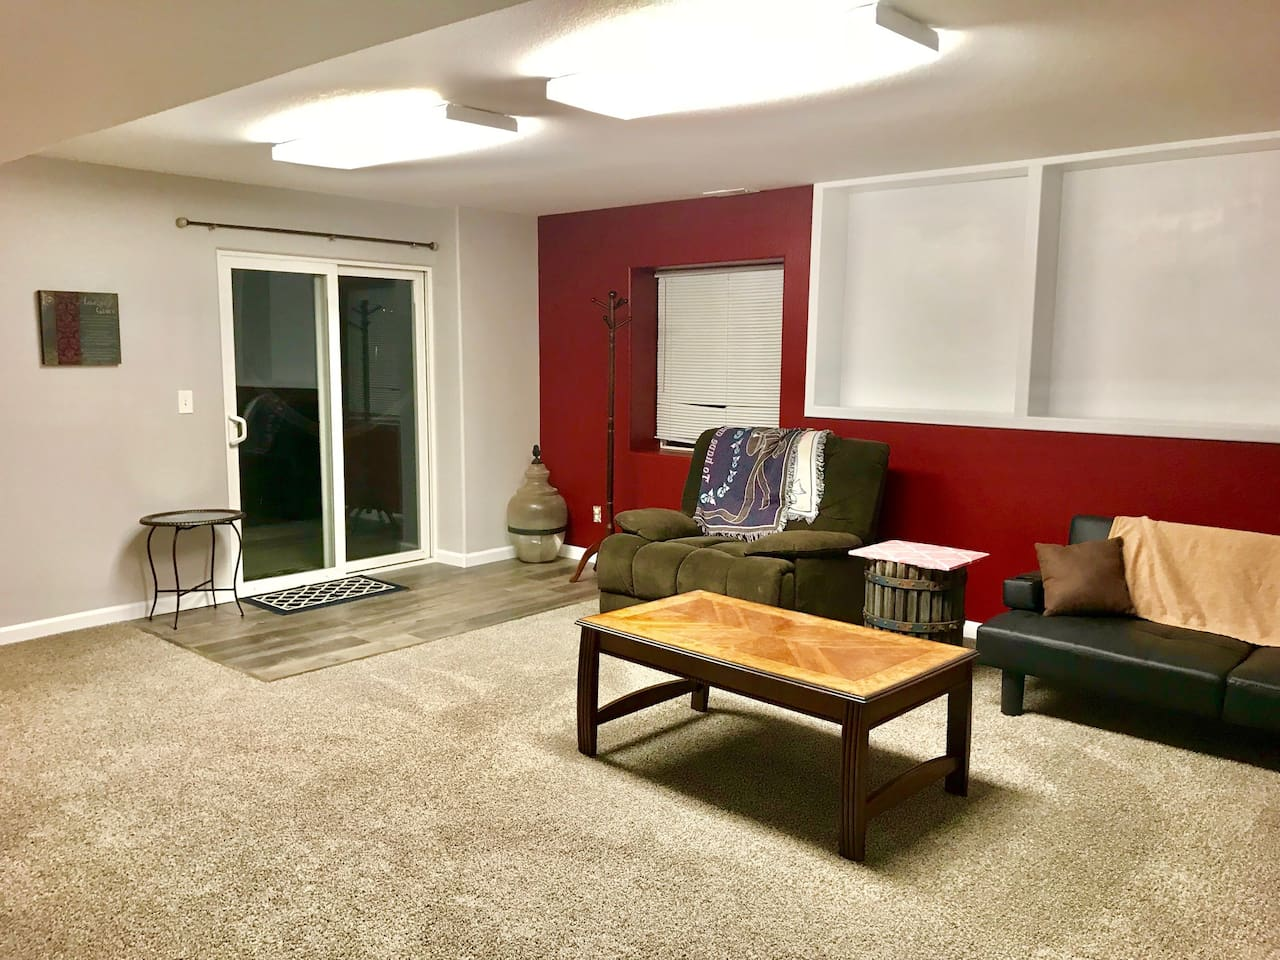 Relax and watch a DVD in the large basement living area